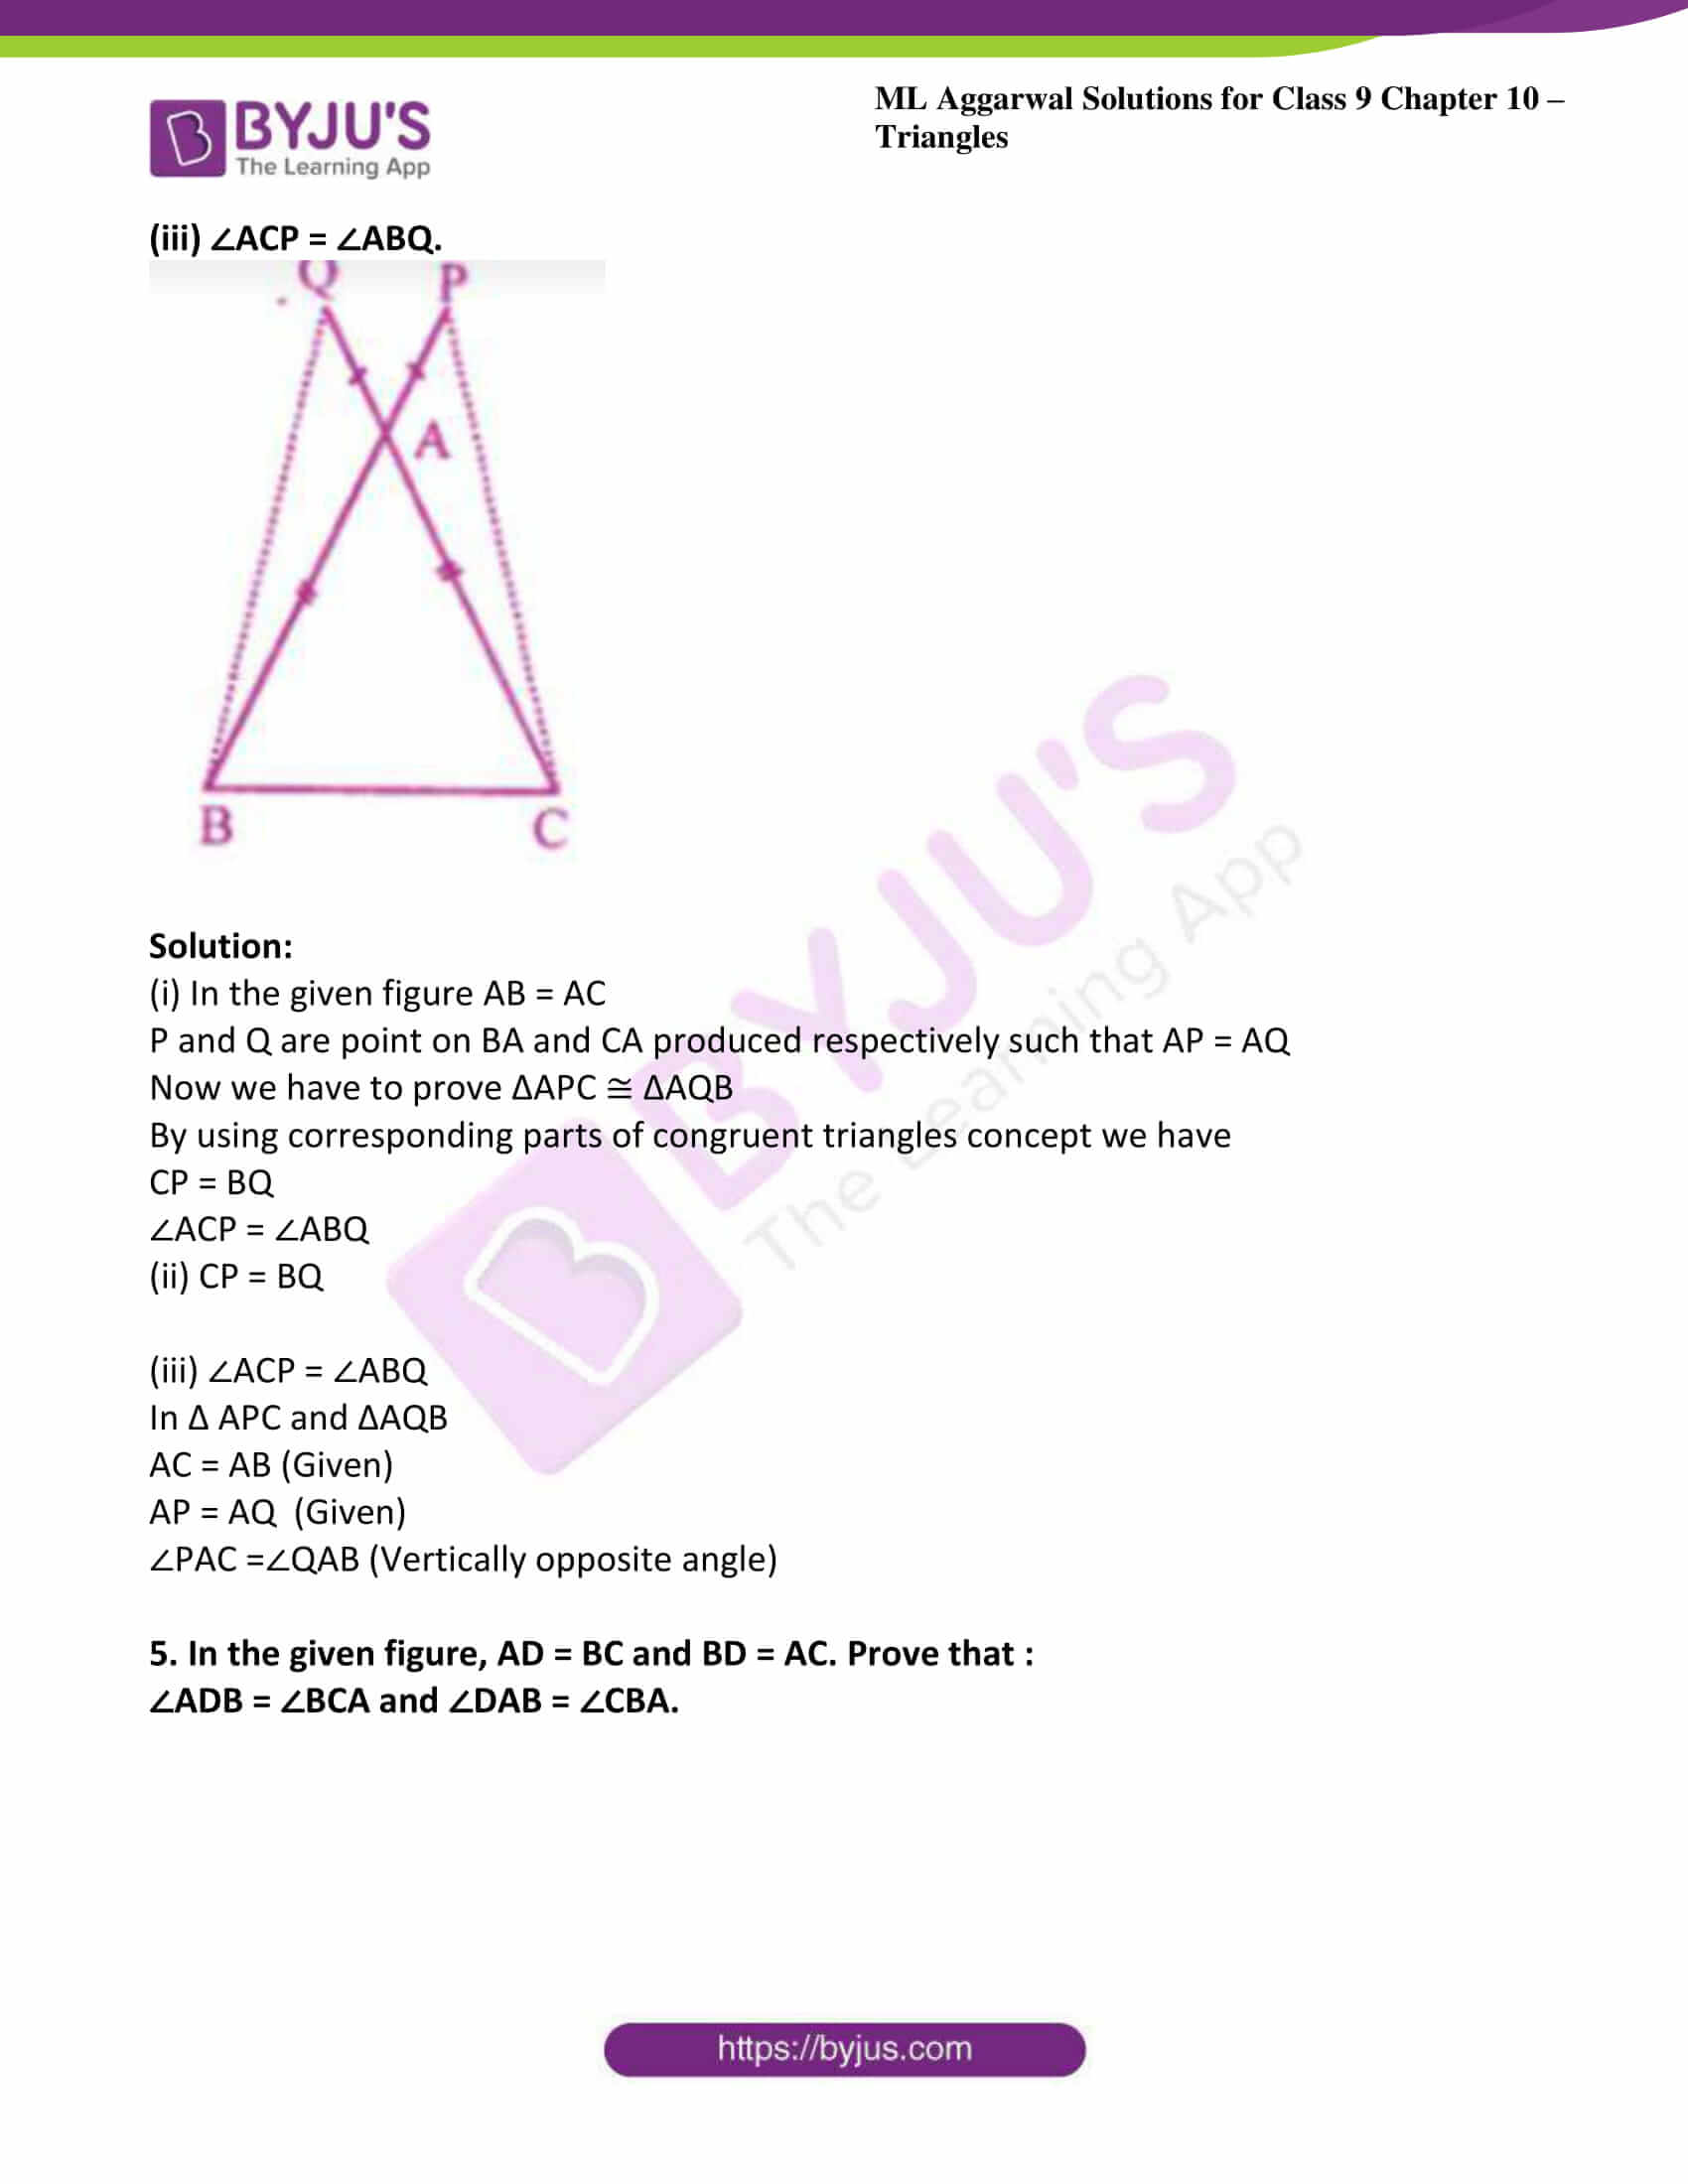 ml aggarwal solutions for class 9 maths chapter 10 03